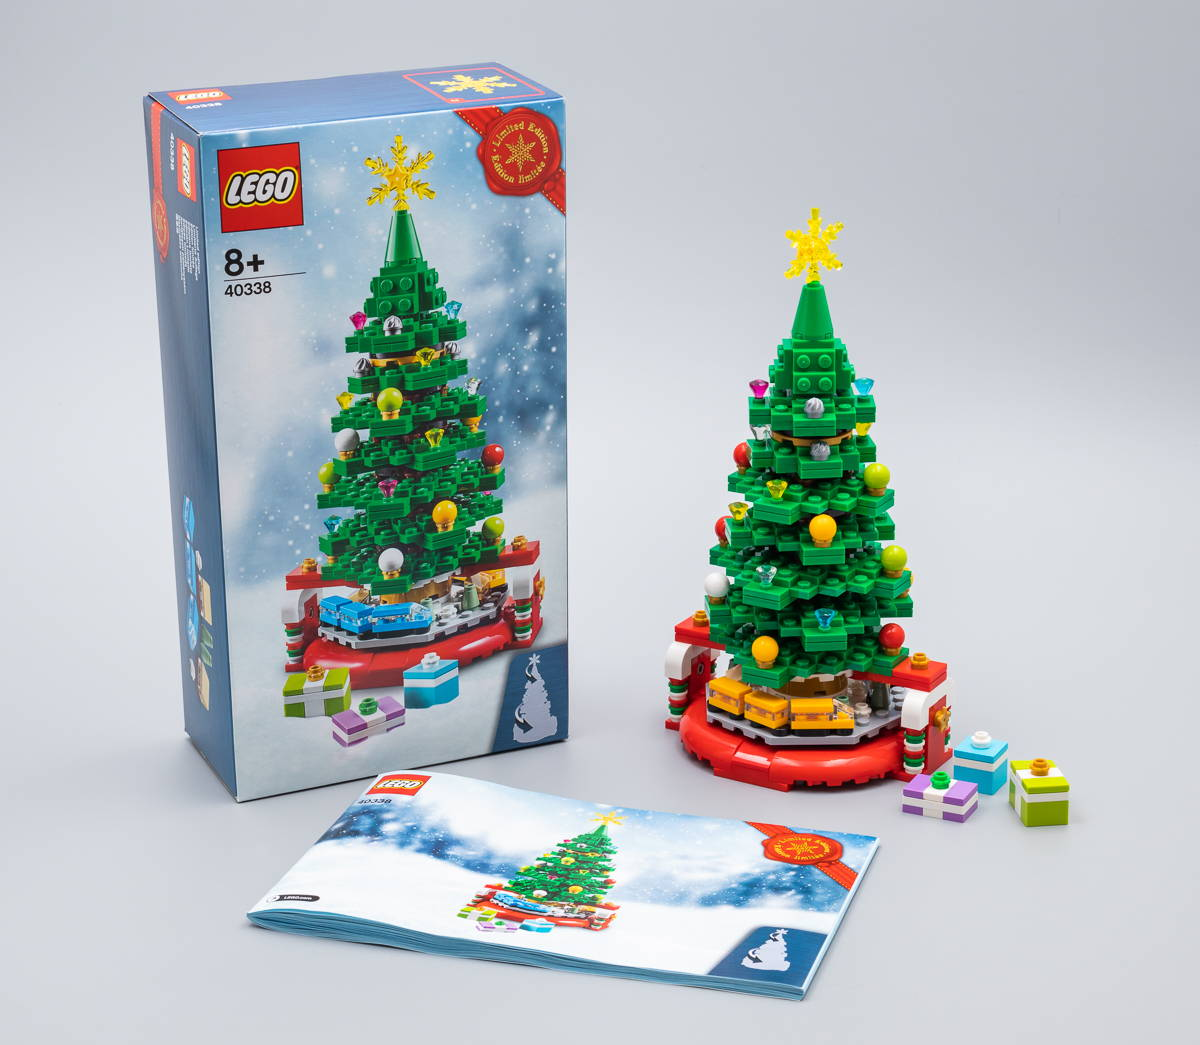 lego 40338 box and booklet